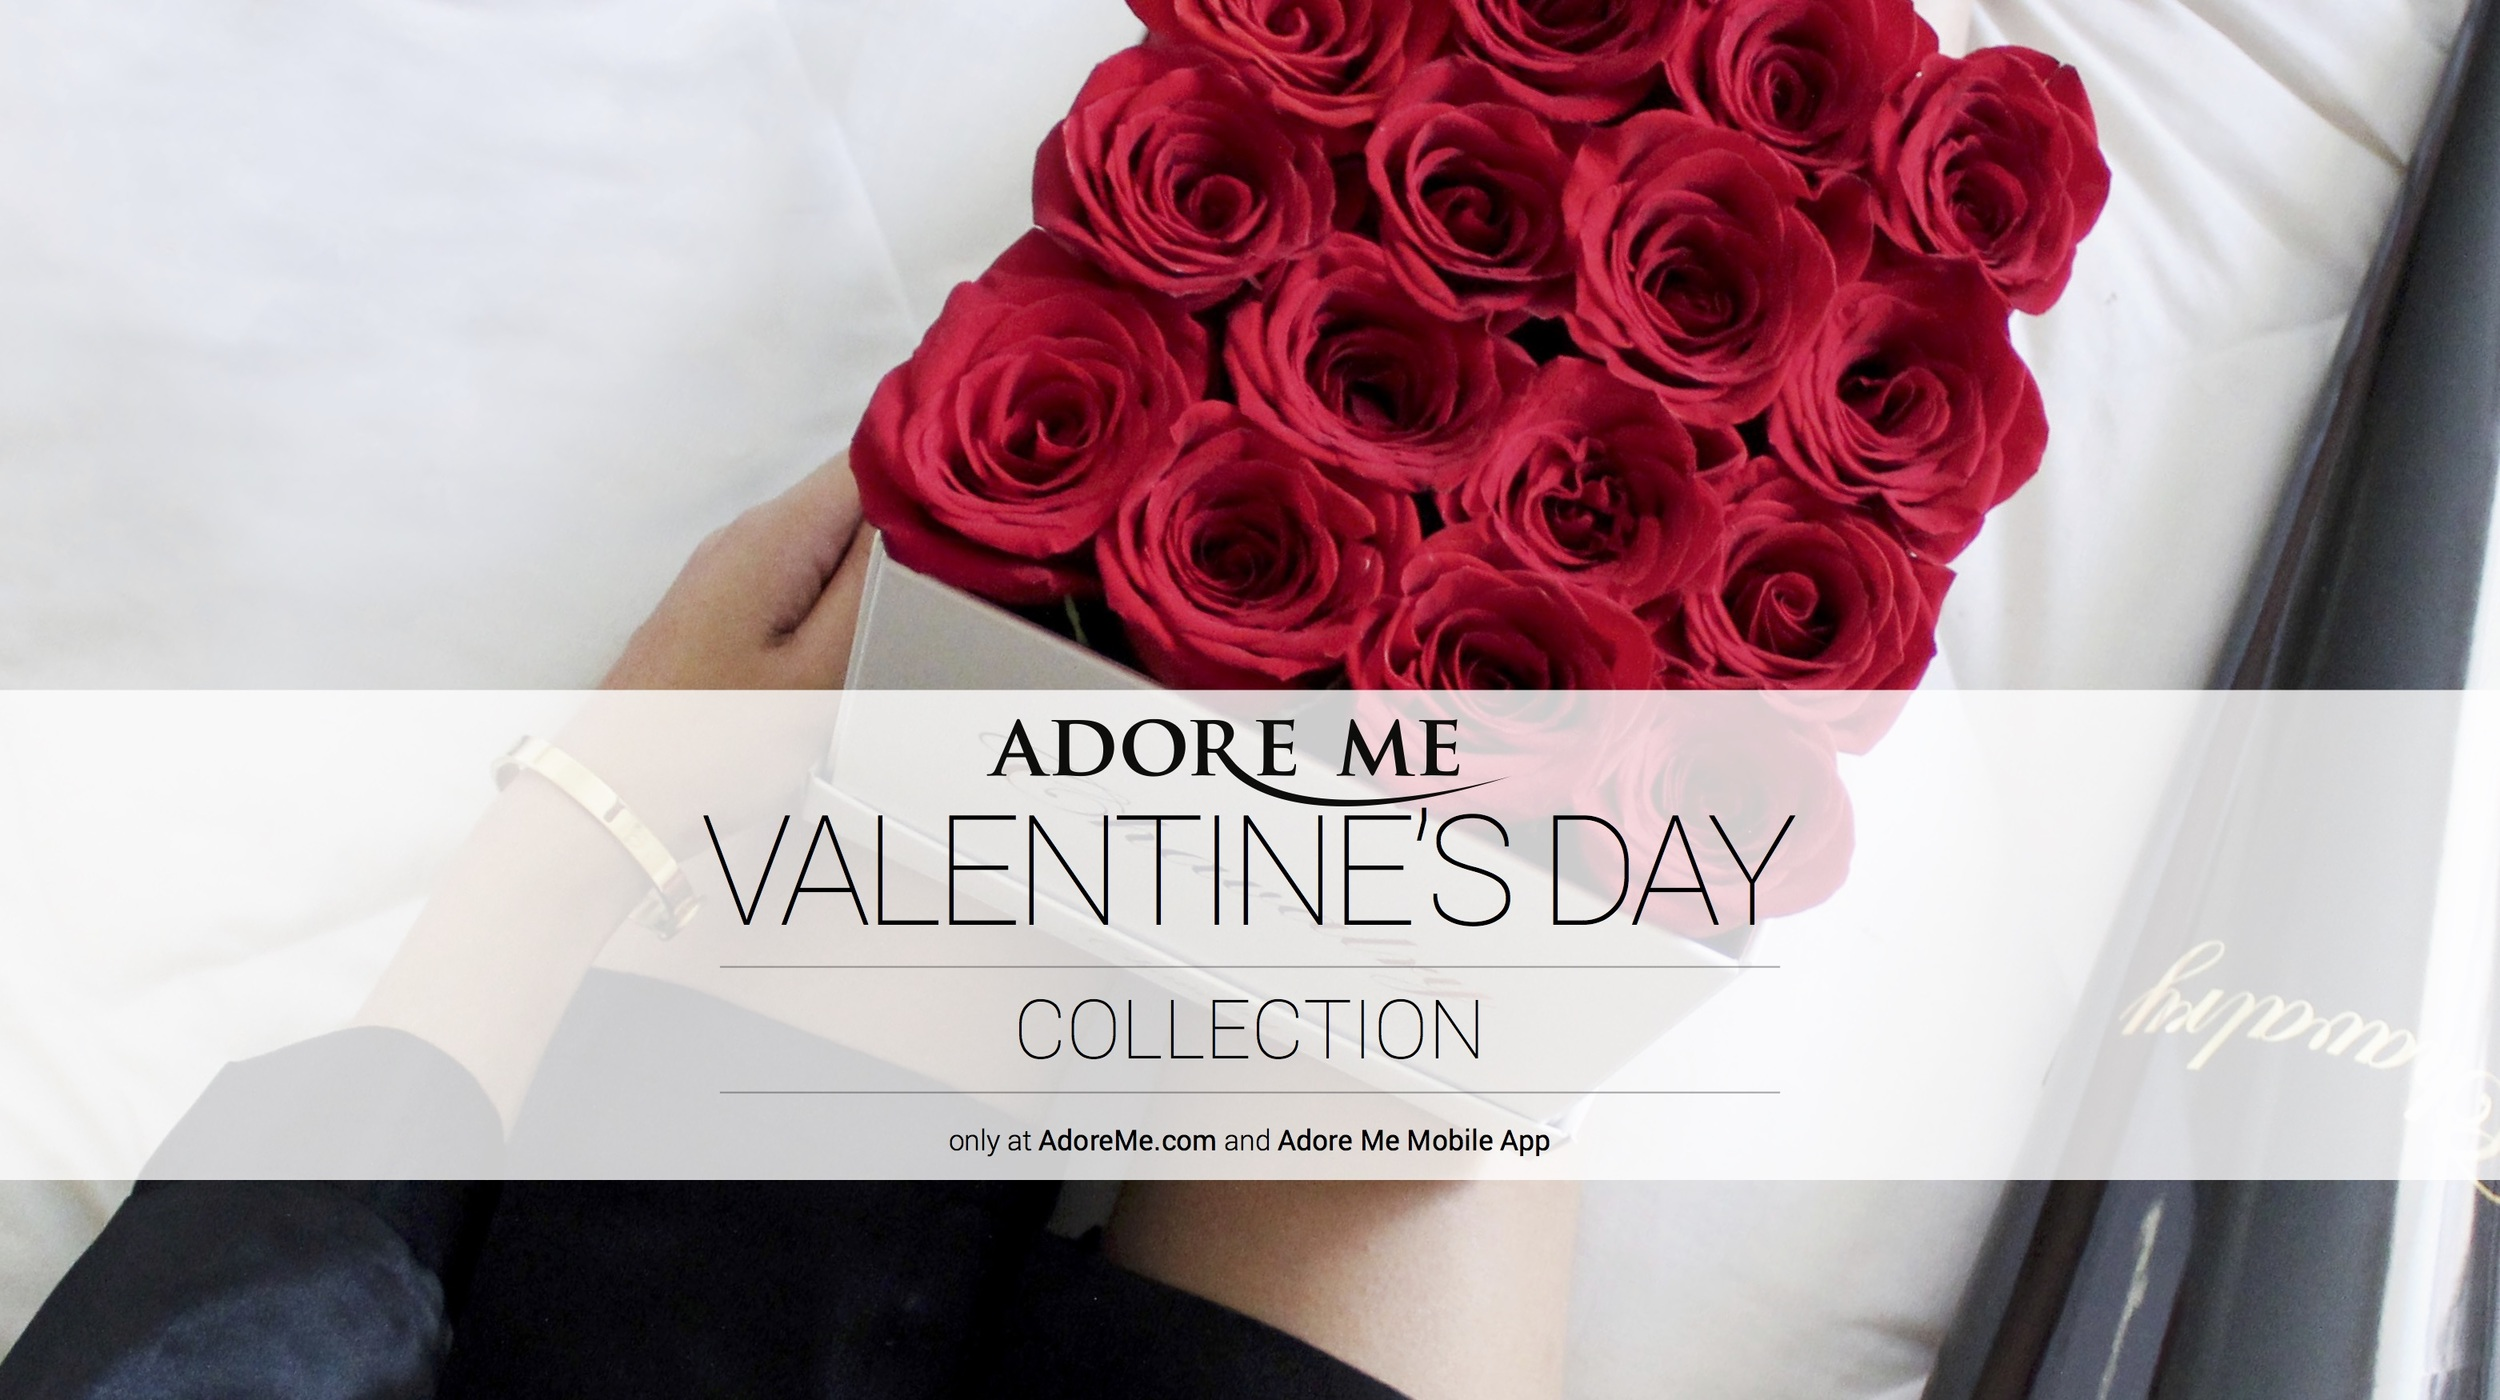 Adore Me Valentine's Day Collection